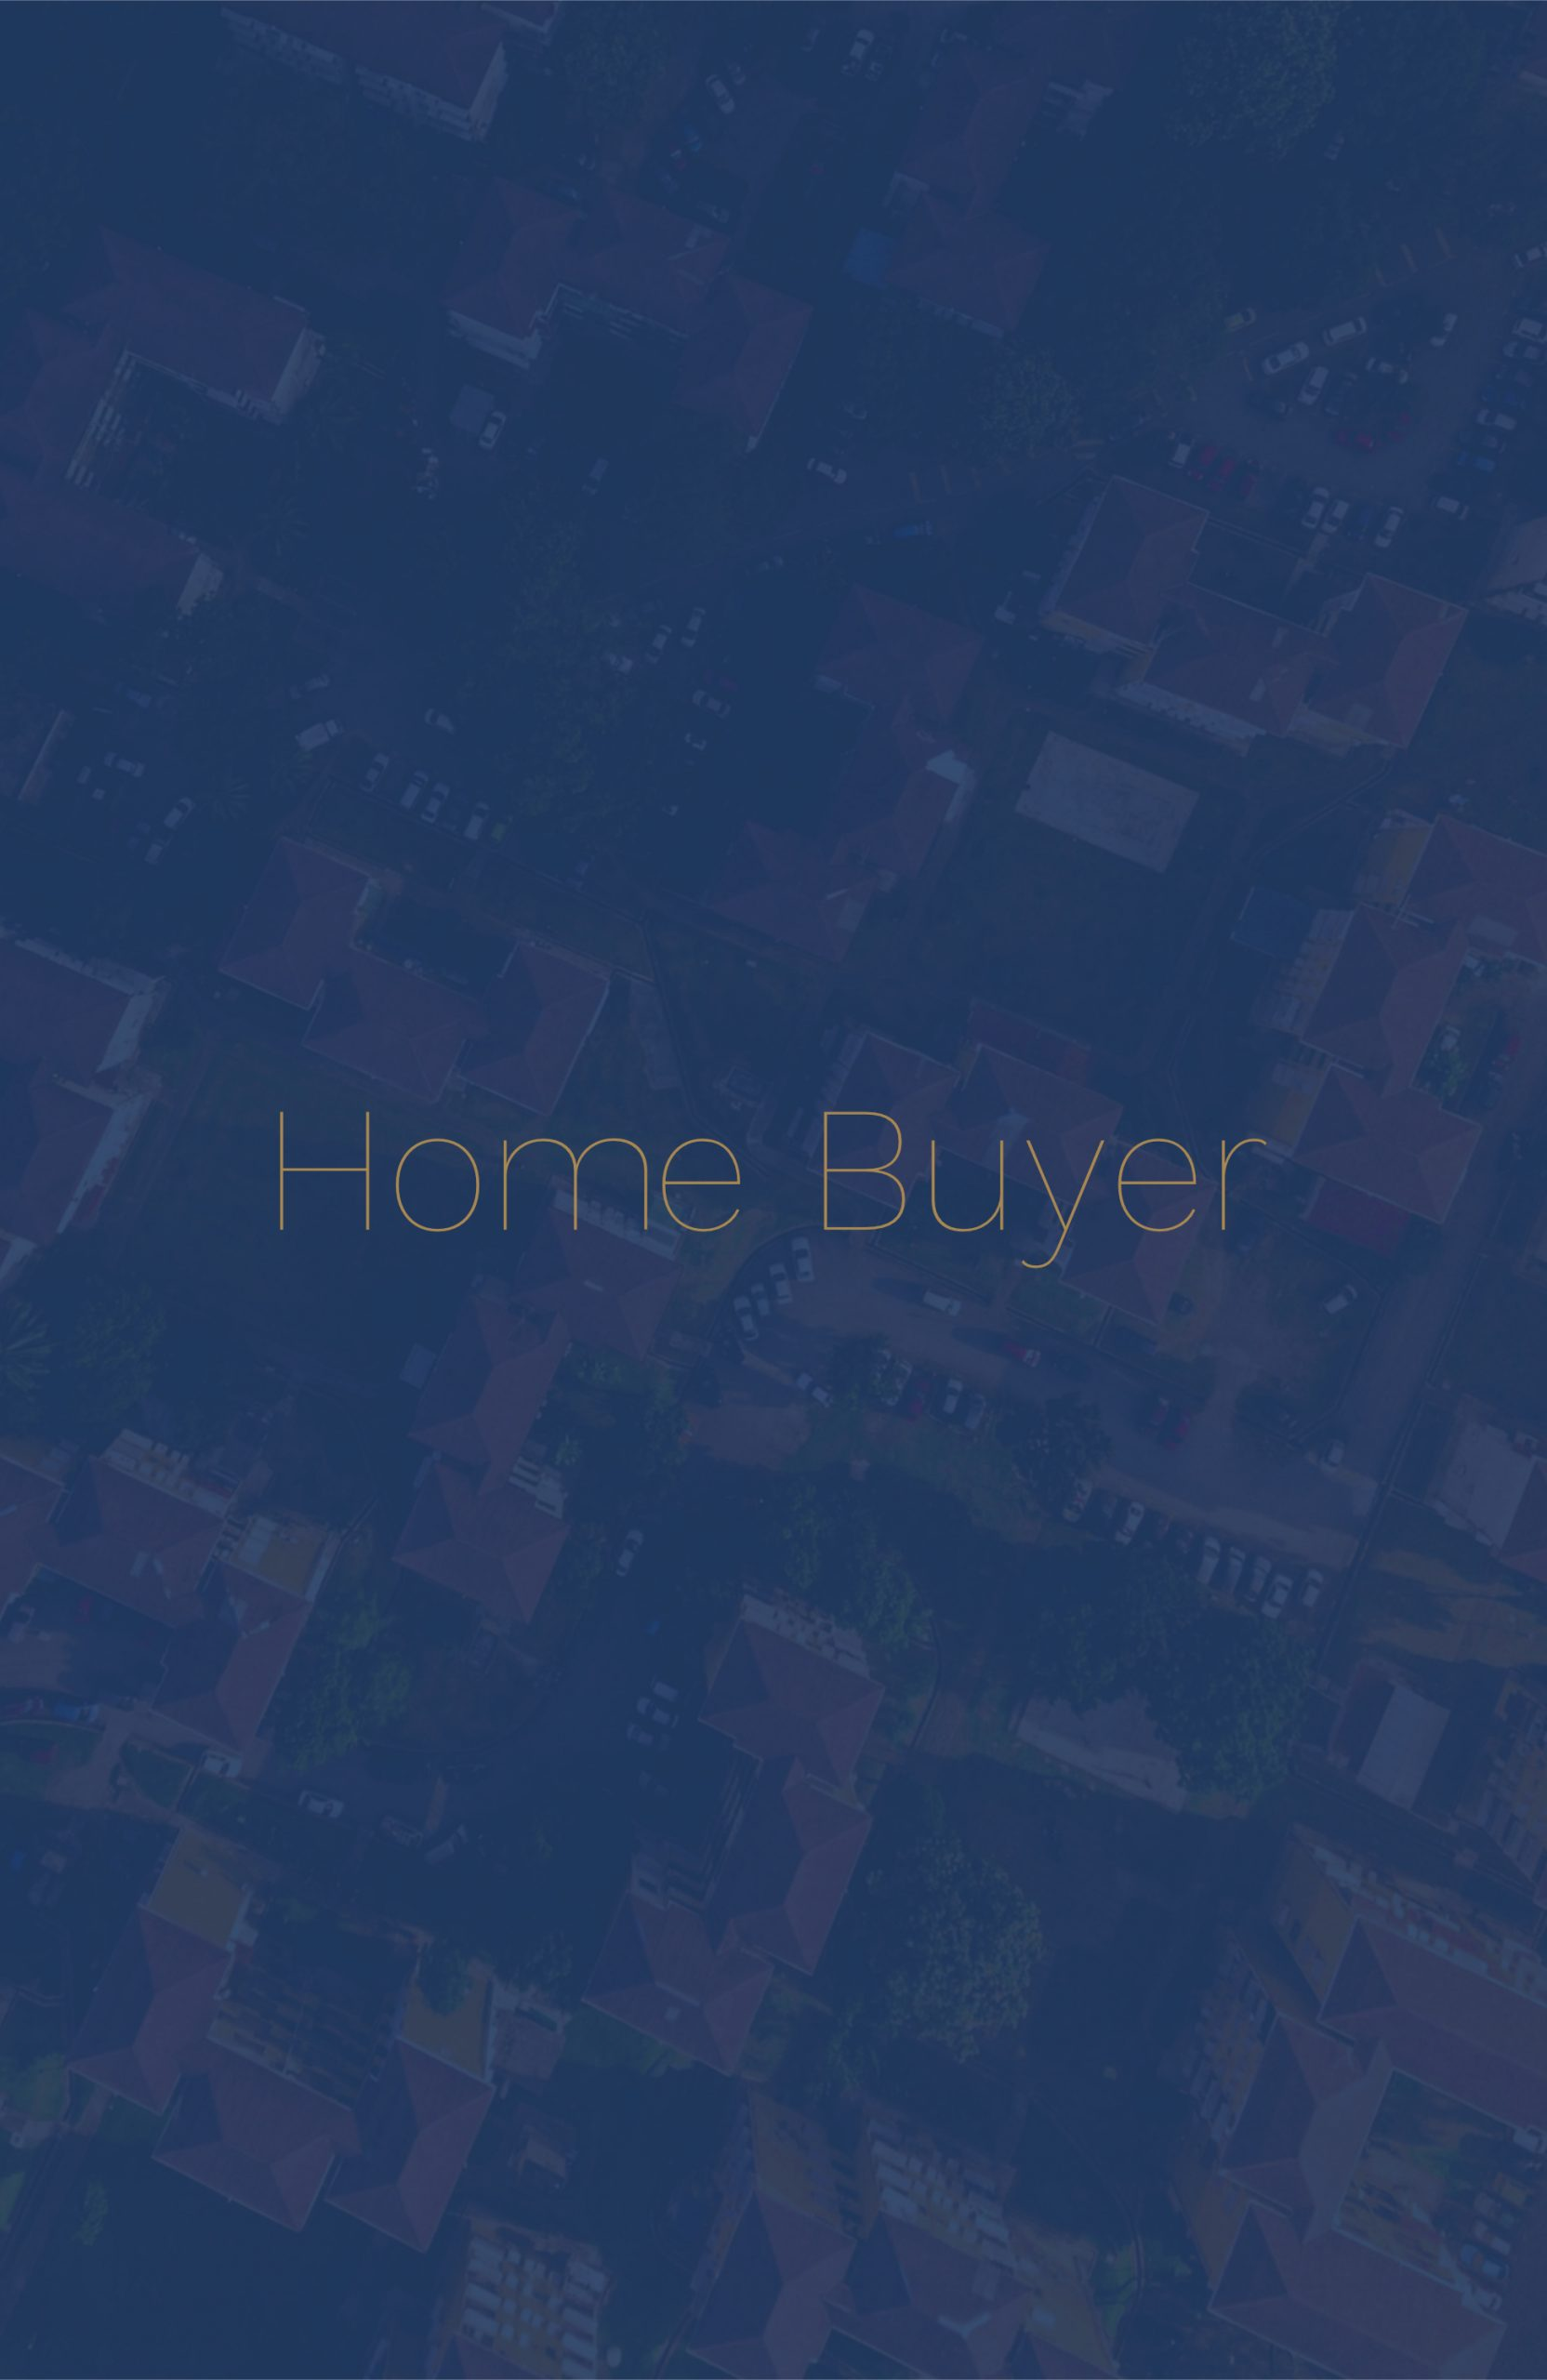 Home Buyer Engage Finance Mobile Header Image